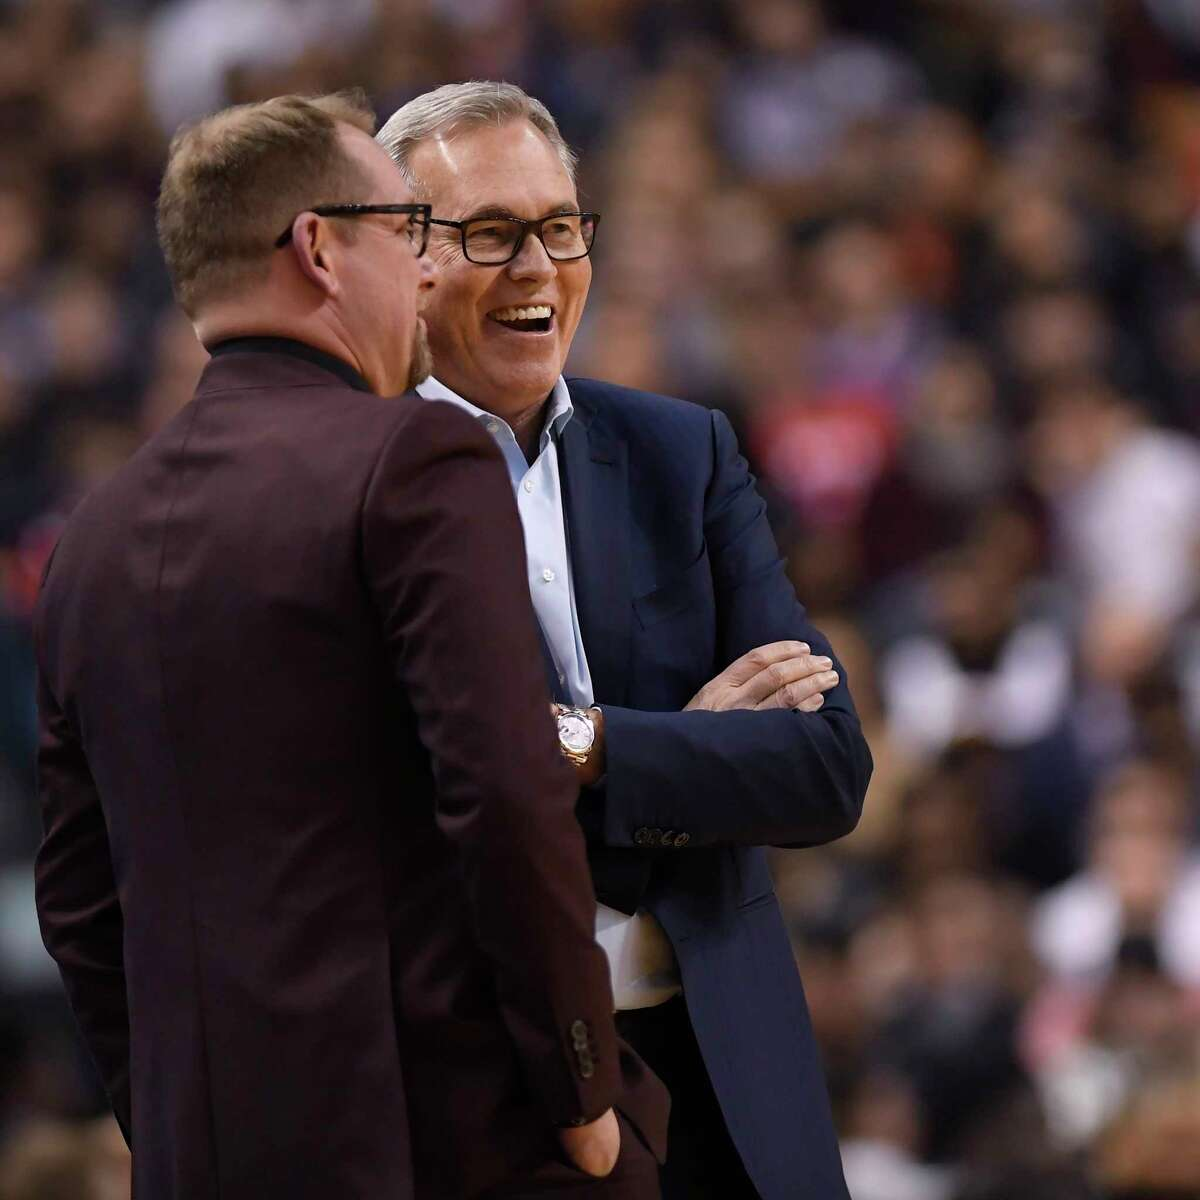 Toronto Raptors head coach Nick Nurse, left, and Houston Rockets head coach Mike D'Antoni chat during a time out during first half NBA action in Toronto on Thursday, Dec.5, 2019. (Nathan Denette/The Canadian Press via AP)